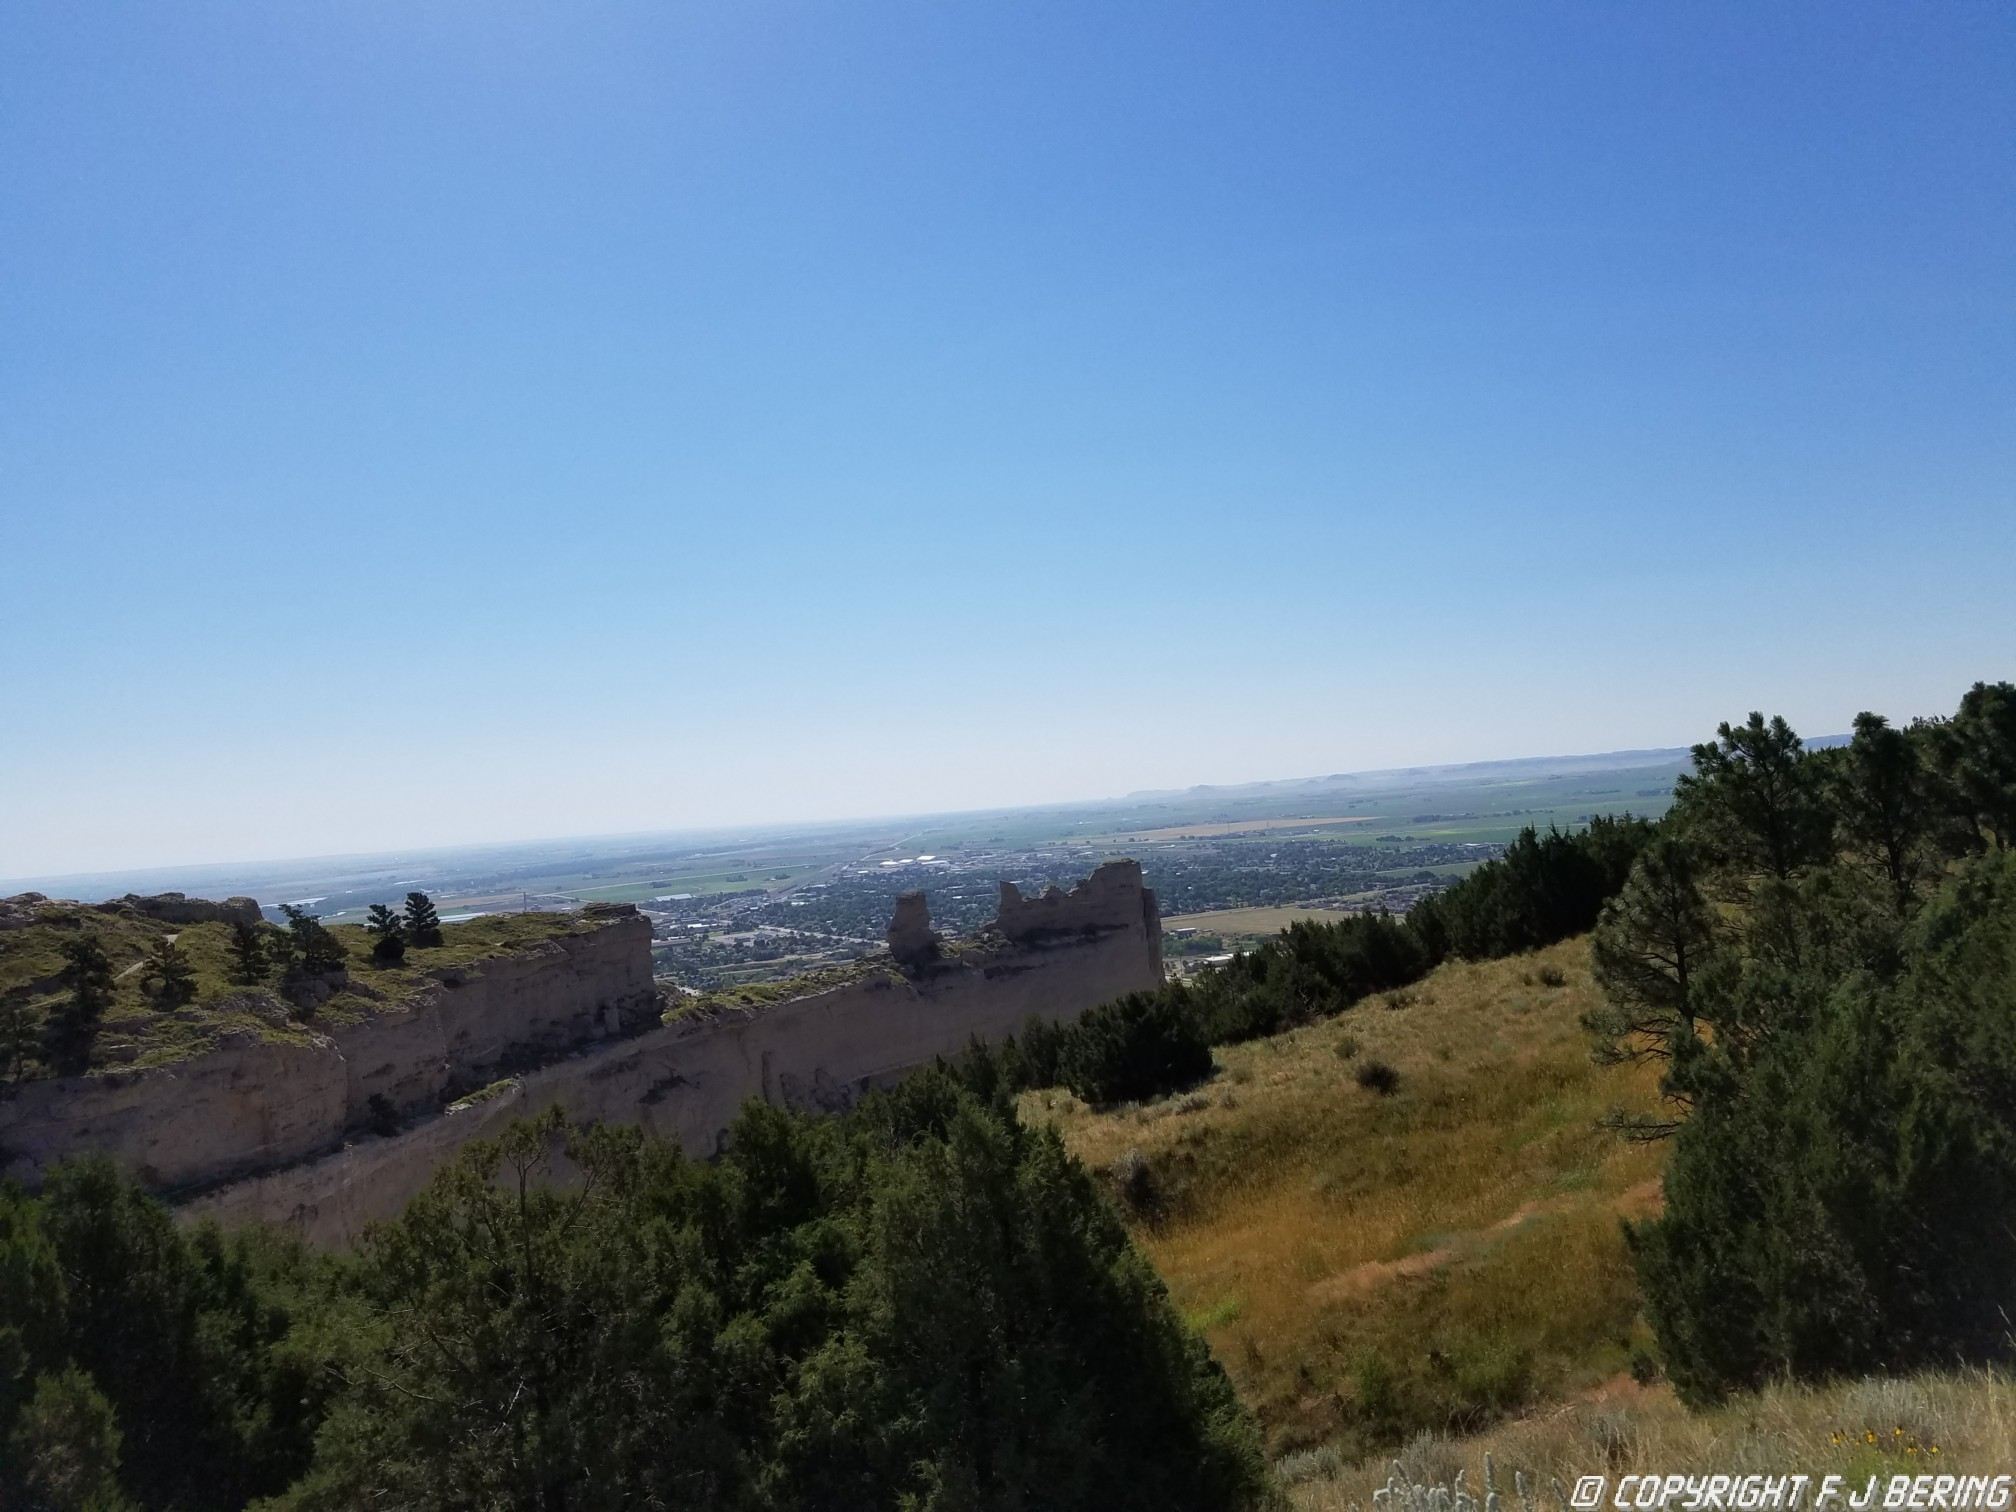 Atop Scottsbluff National Monument